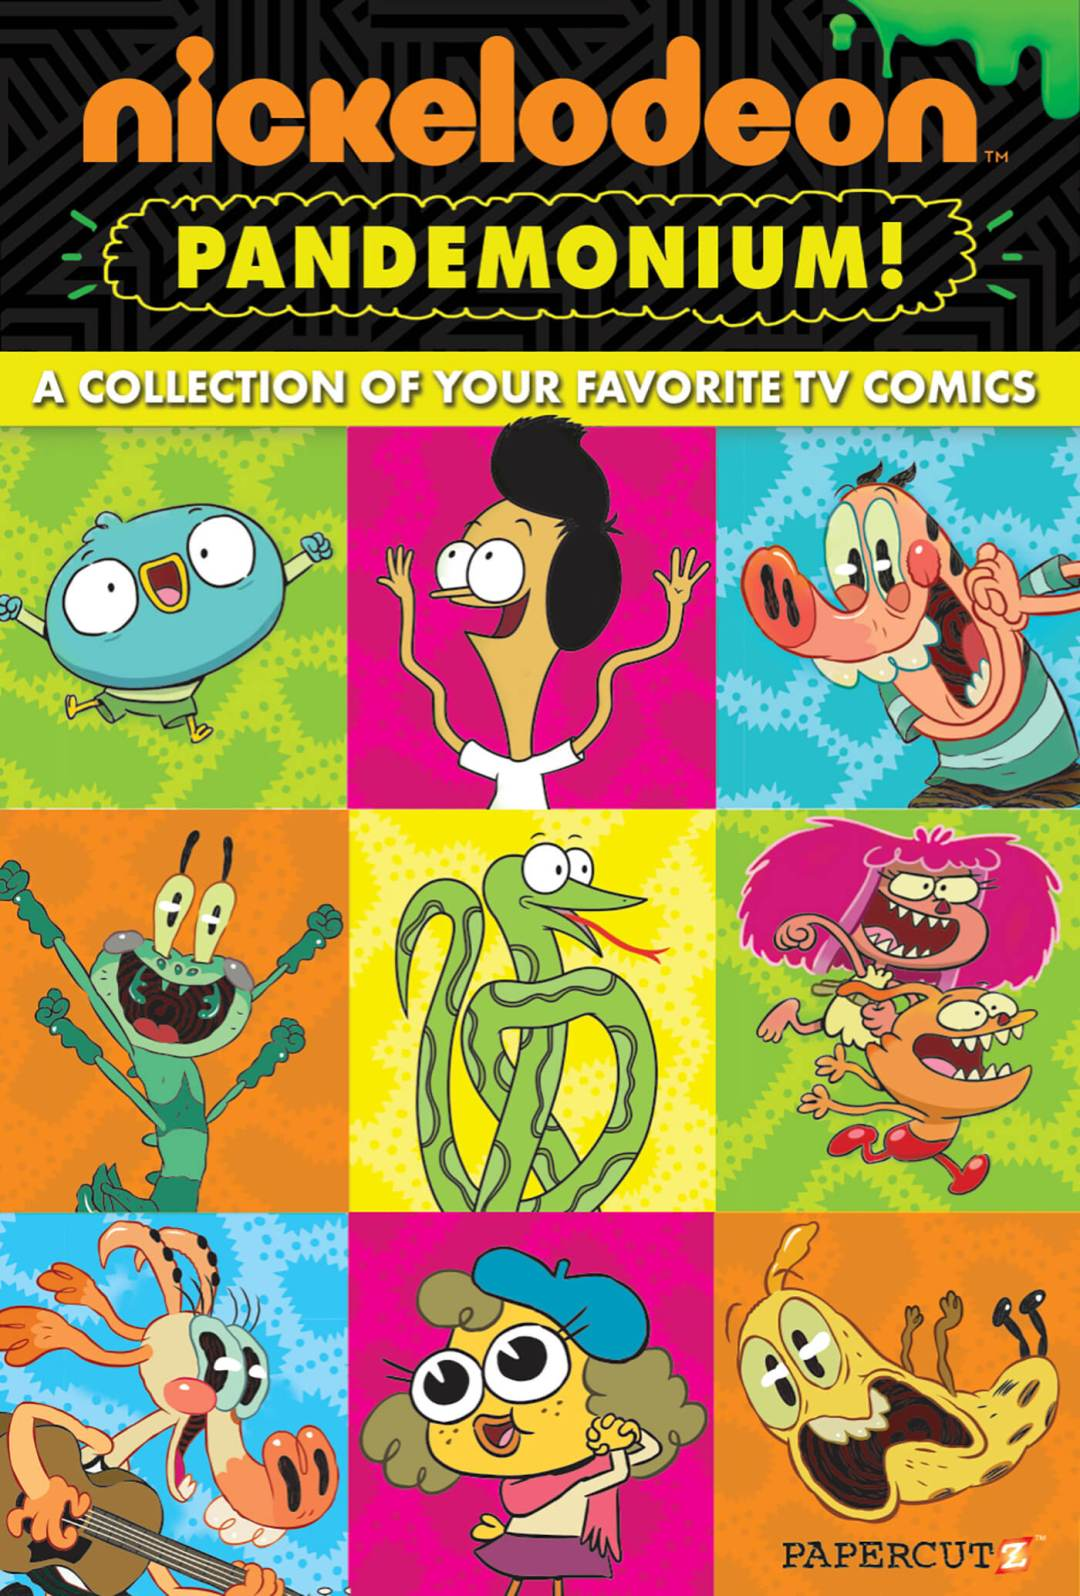 Cover to Nickelodeon Pandemonium #1